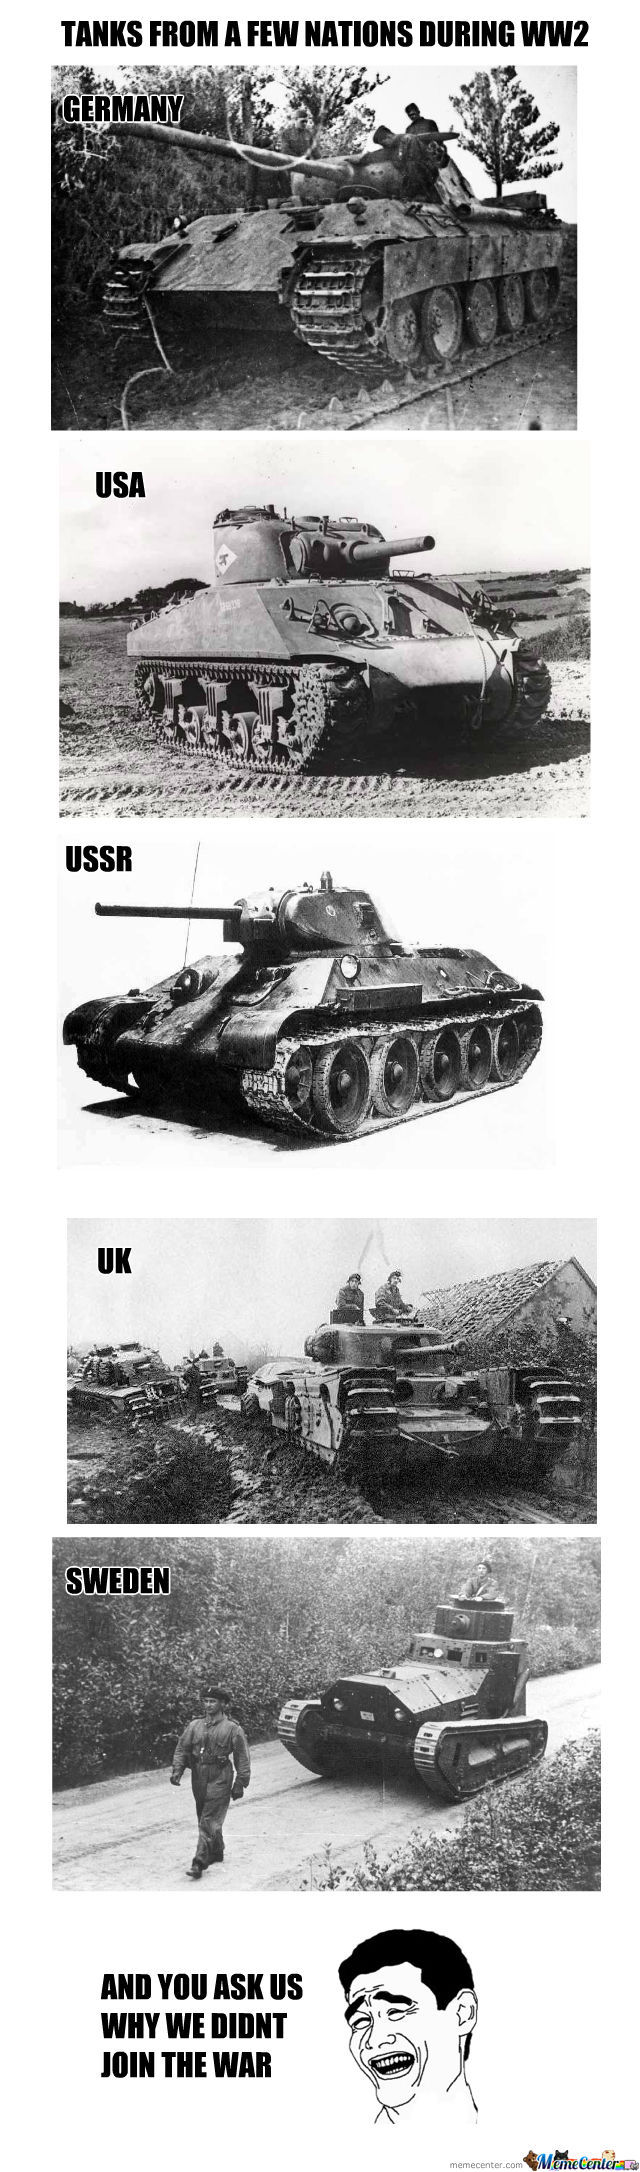 This Is The Reason We Stayed Neutral During Ww2